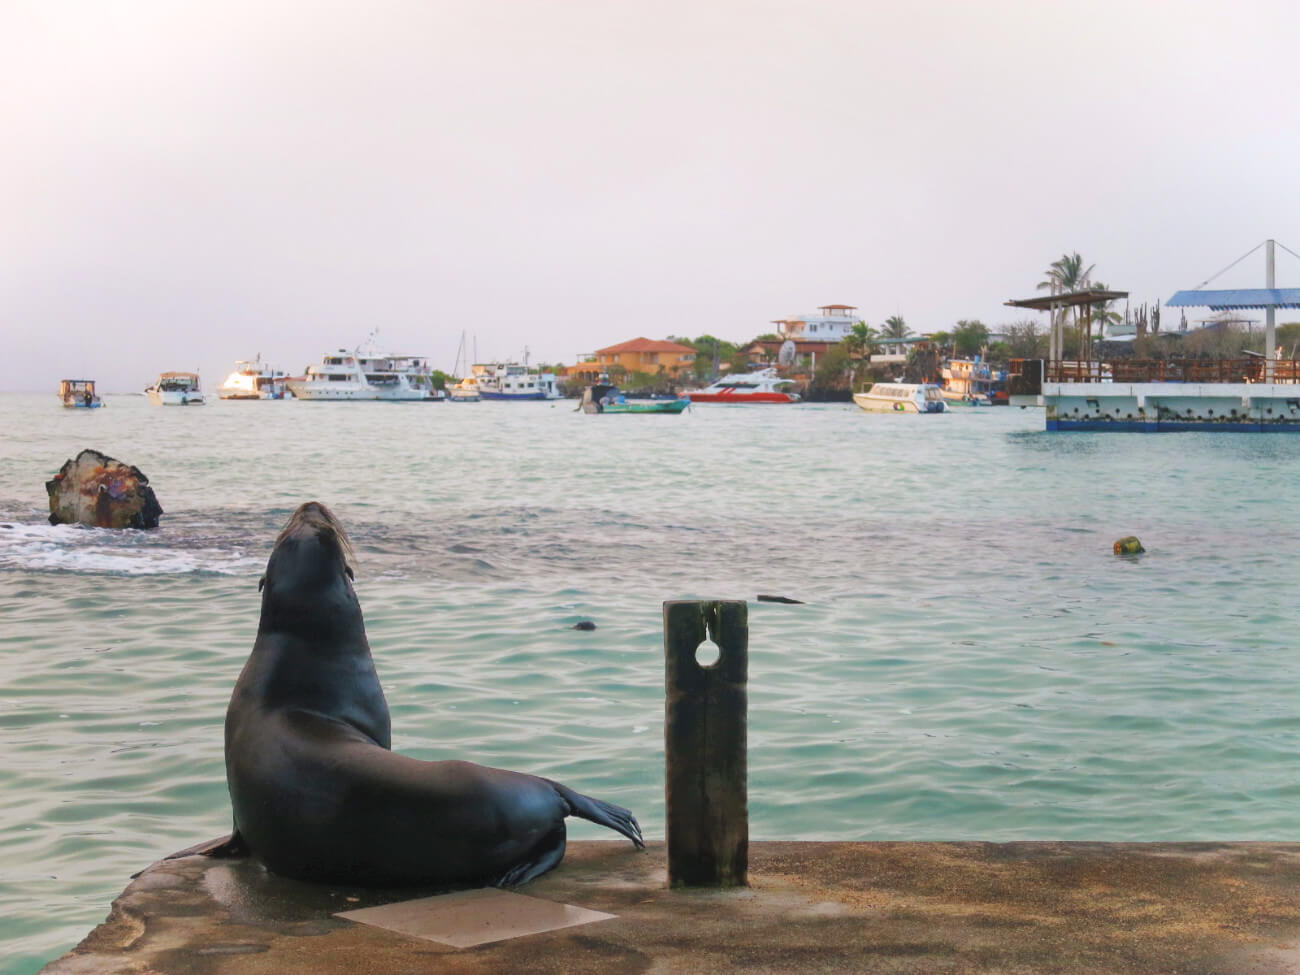 Good morning, Santa Cruz! This little cutie was there to greet us at the Puerto Ayora docks and entertained us while we waited for our ferry to Isabela Island. The best part of waking up early in the Galapagos Islands!